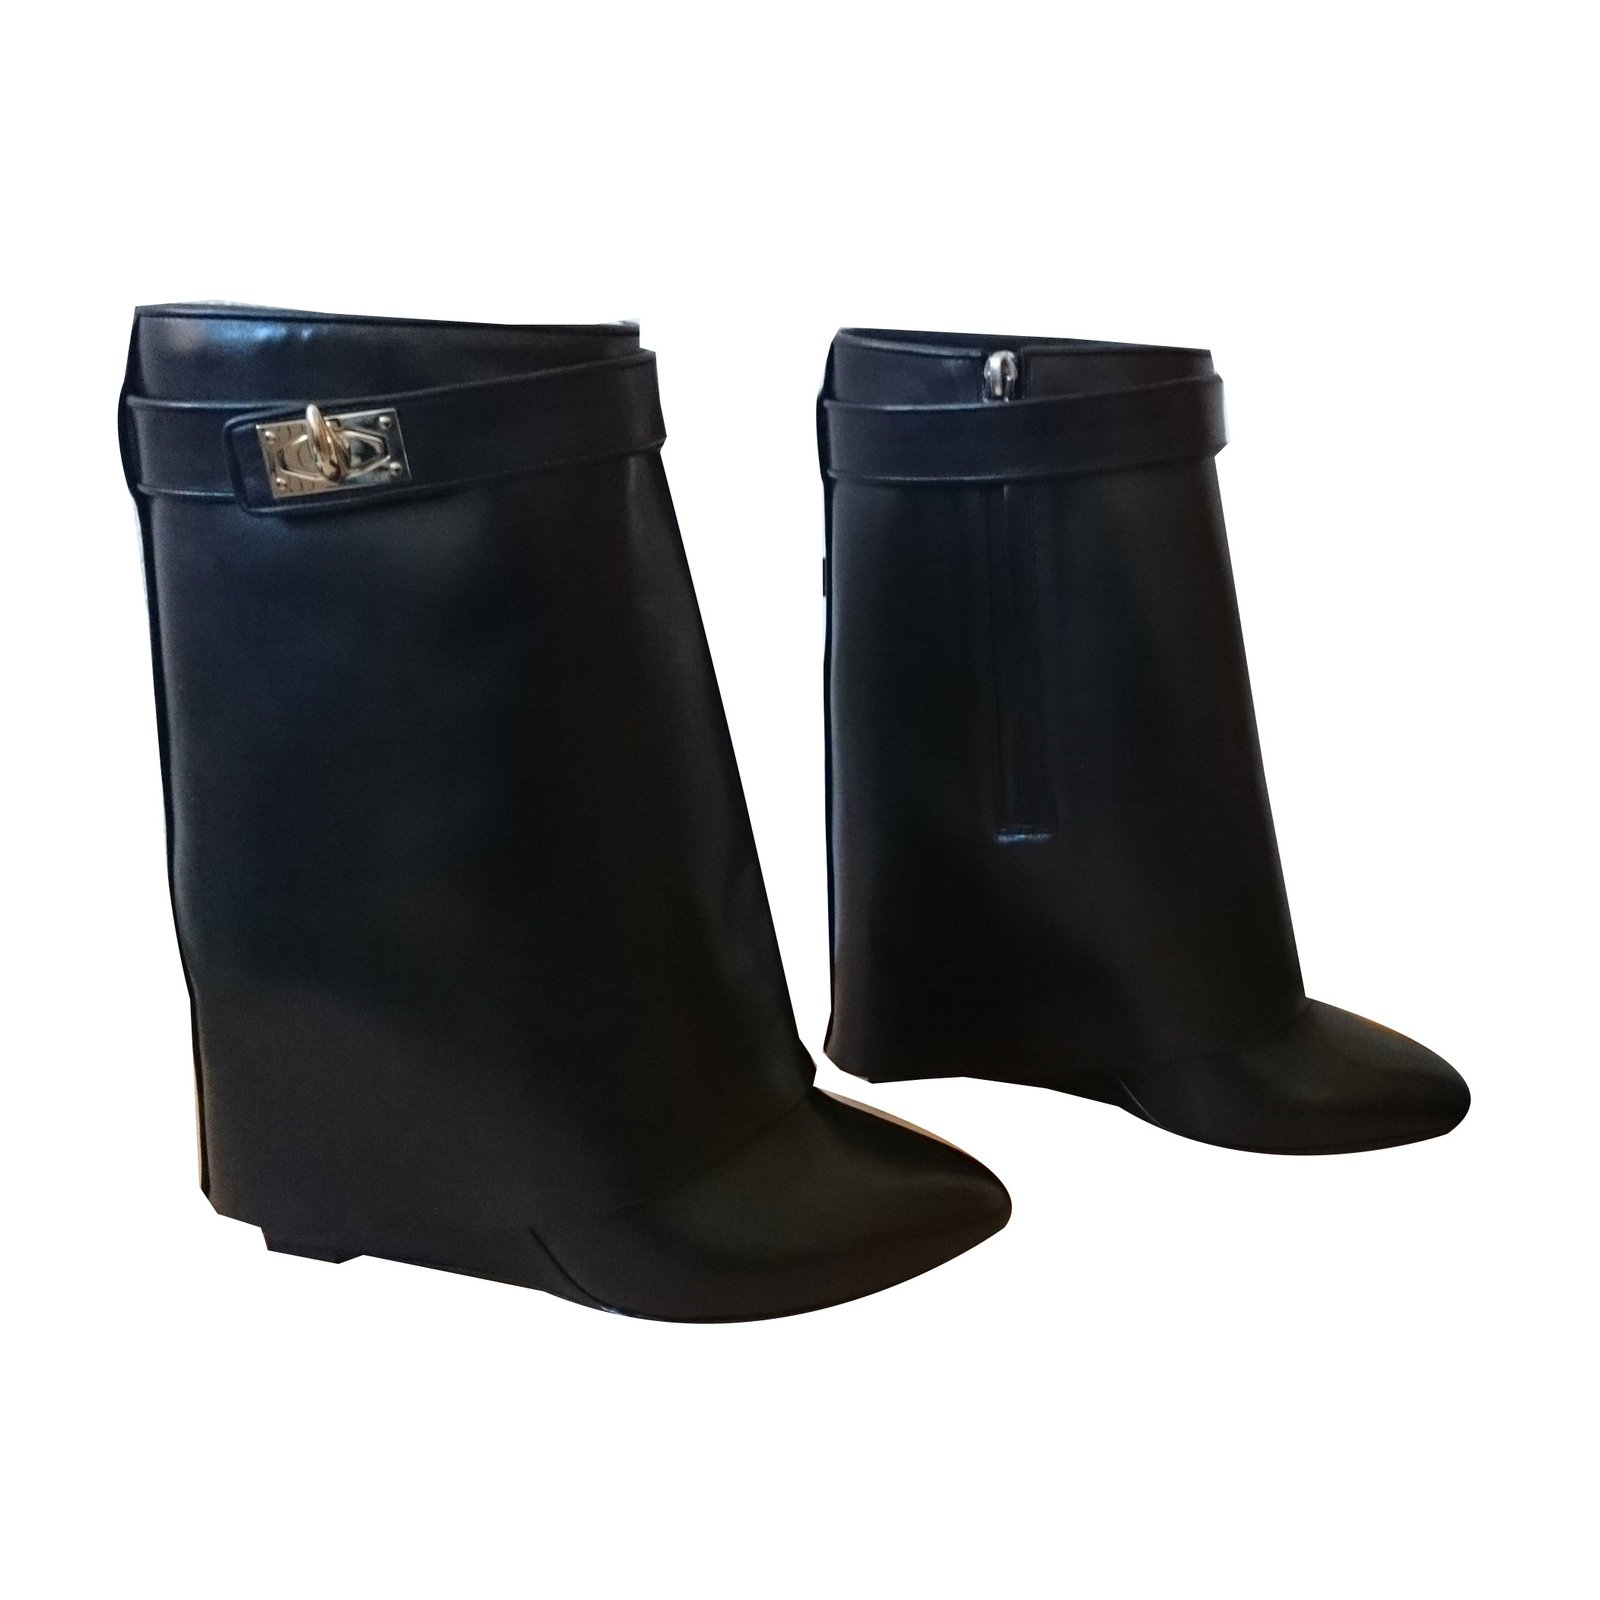 Givenchy Givenchy Shark Lock Ankle boots Size 39 Ankle Boots Leather Black  ref.39617 5fc37c45c4fb